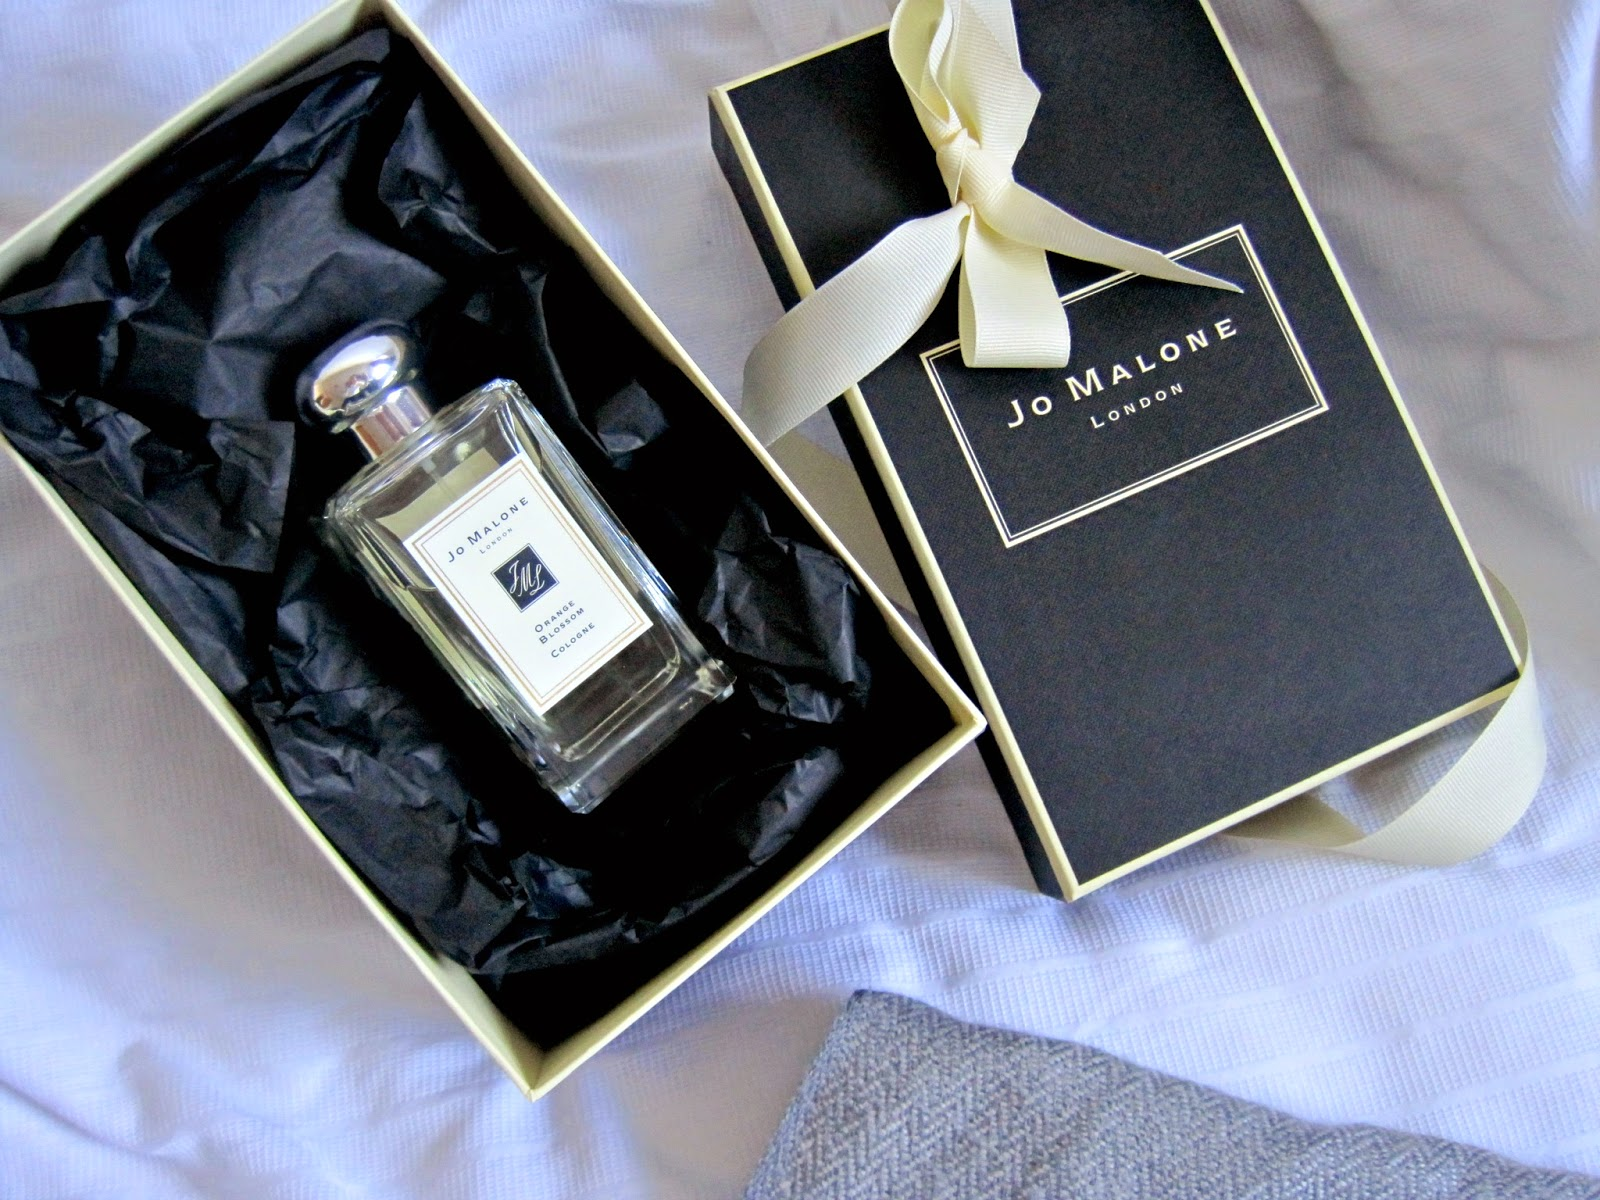 jo malone orange blossom perfume review scent